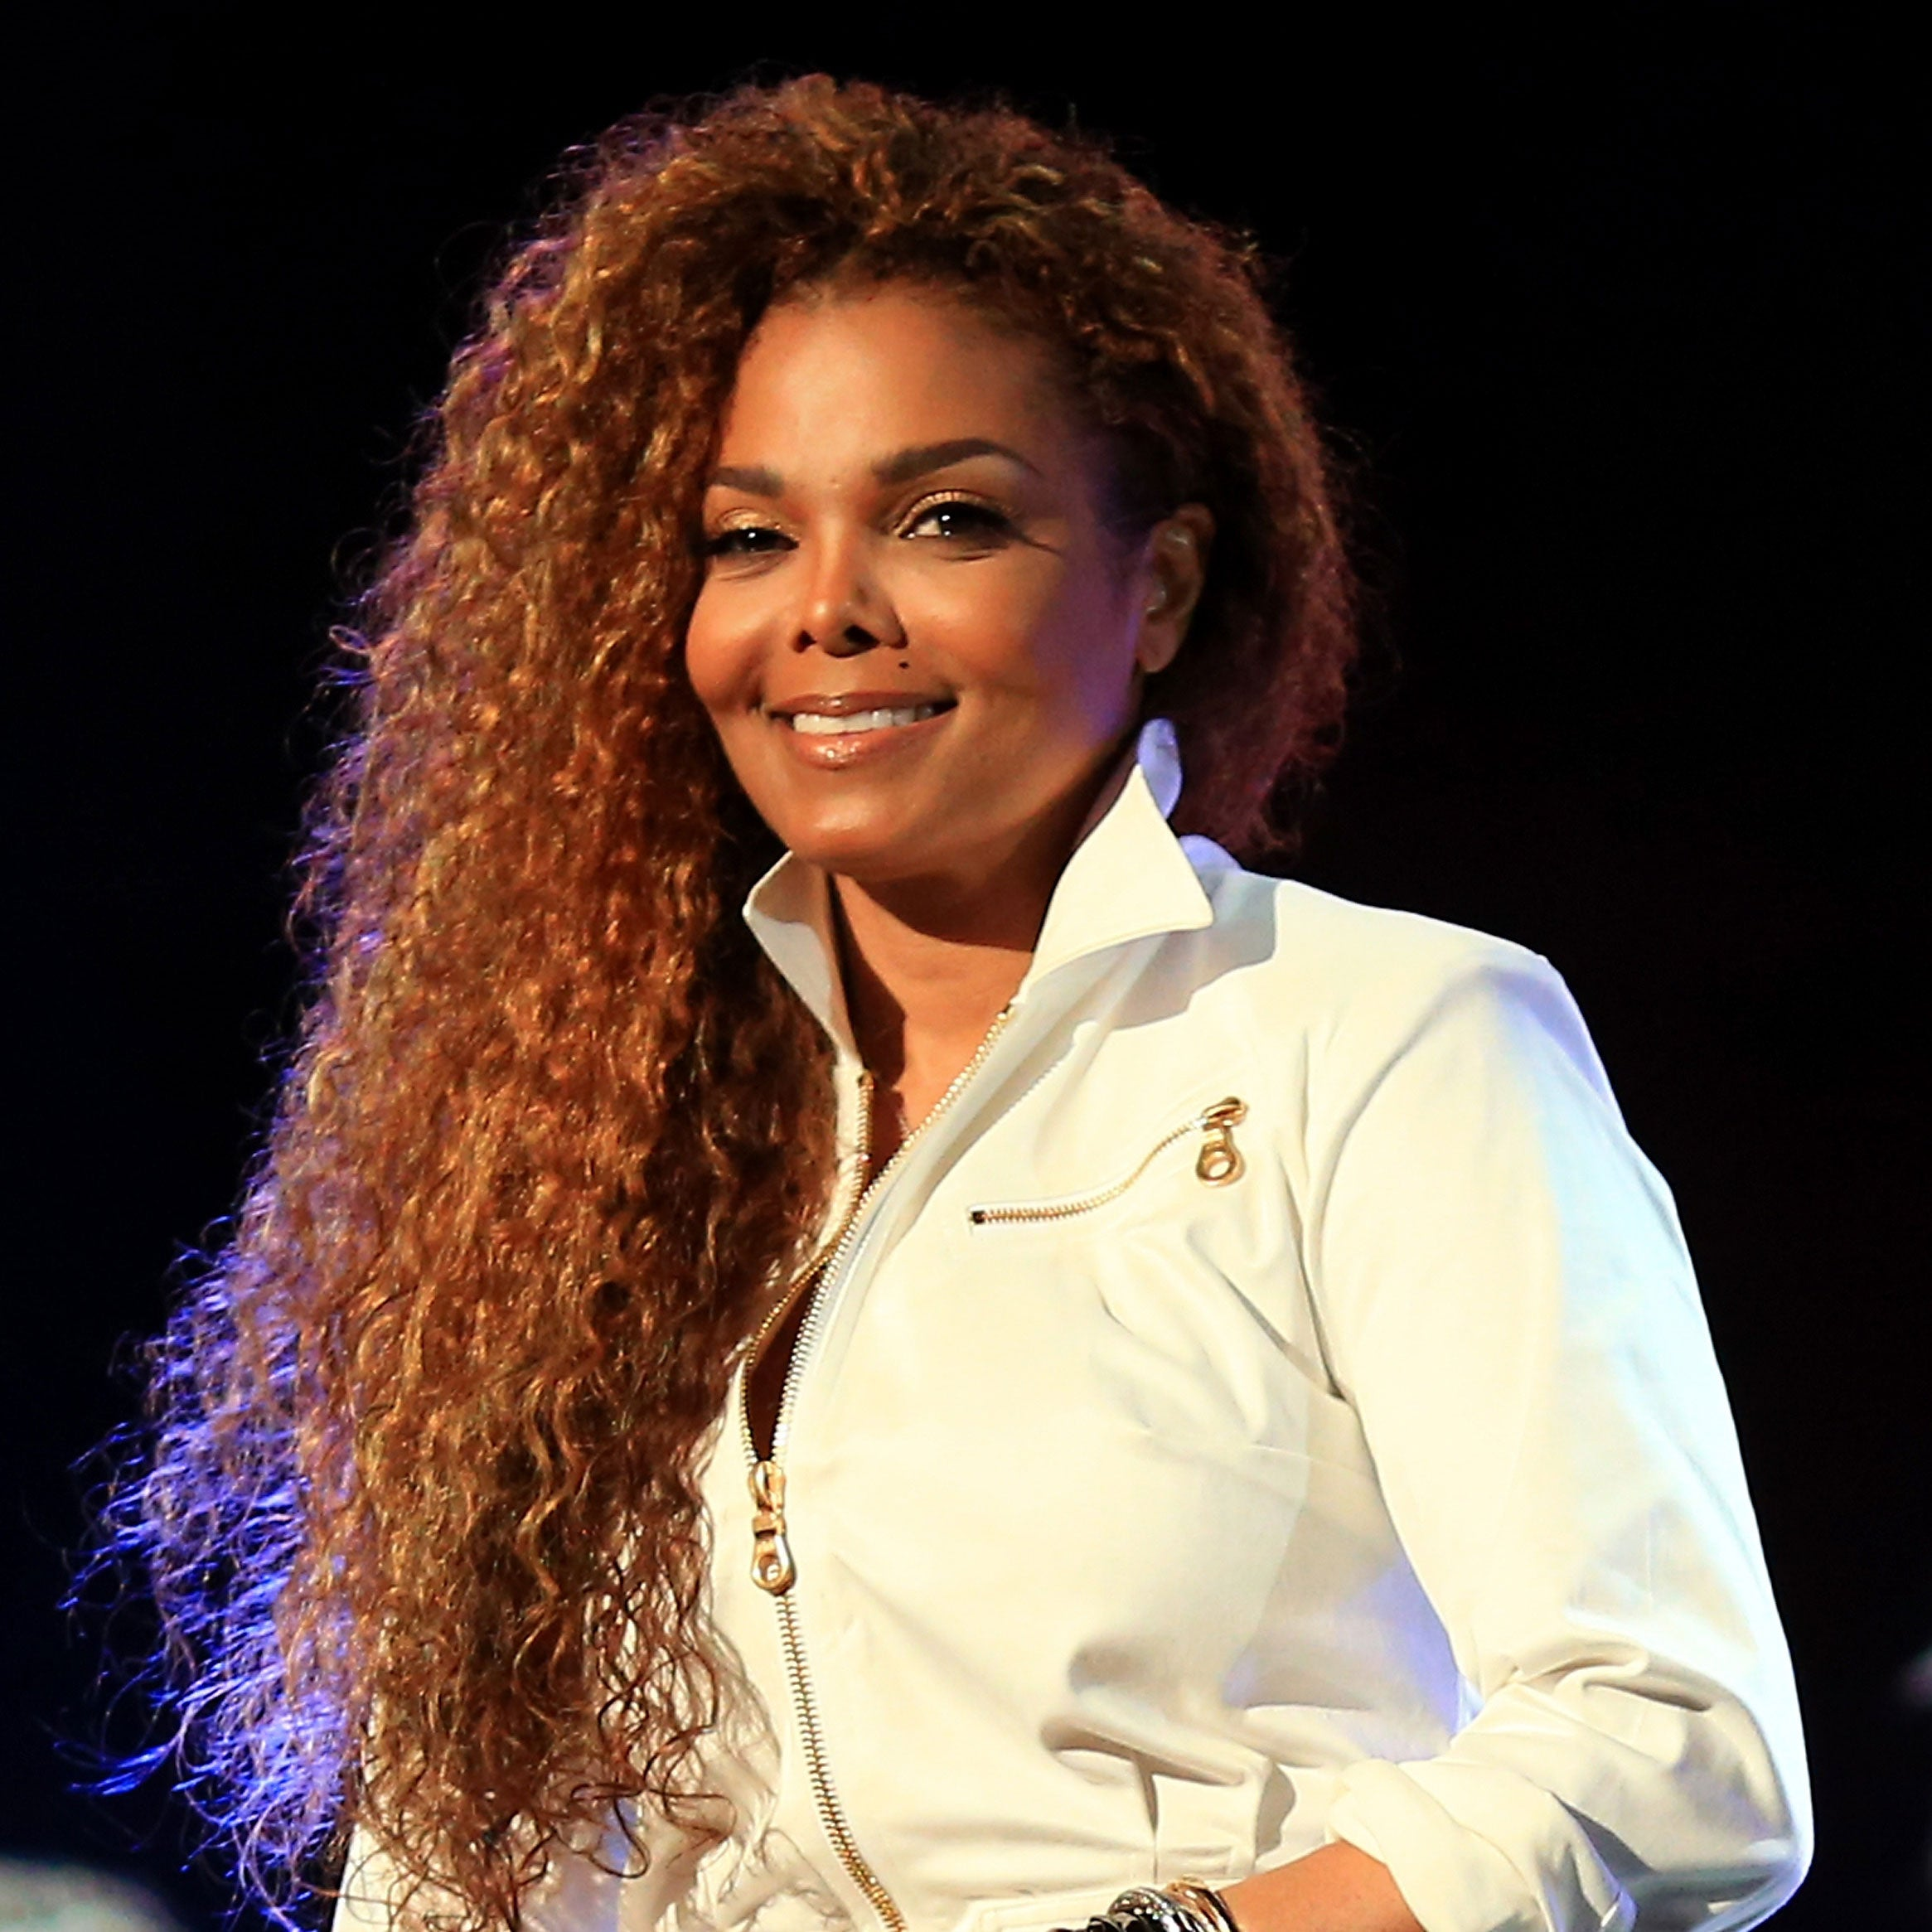 I M Doing Well Janet Jackson Shares Baby Update To Ure Fans She S Alright